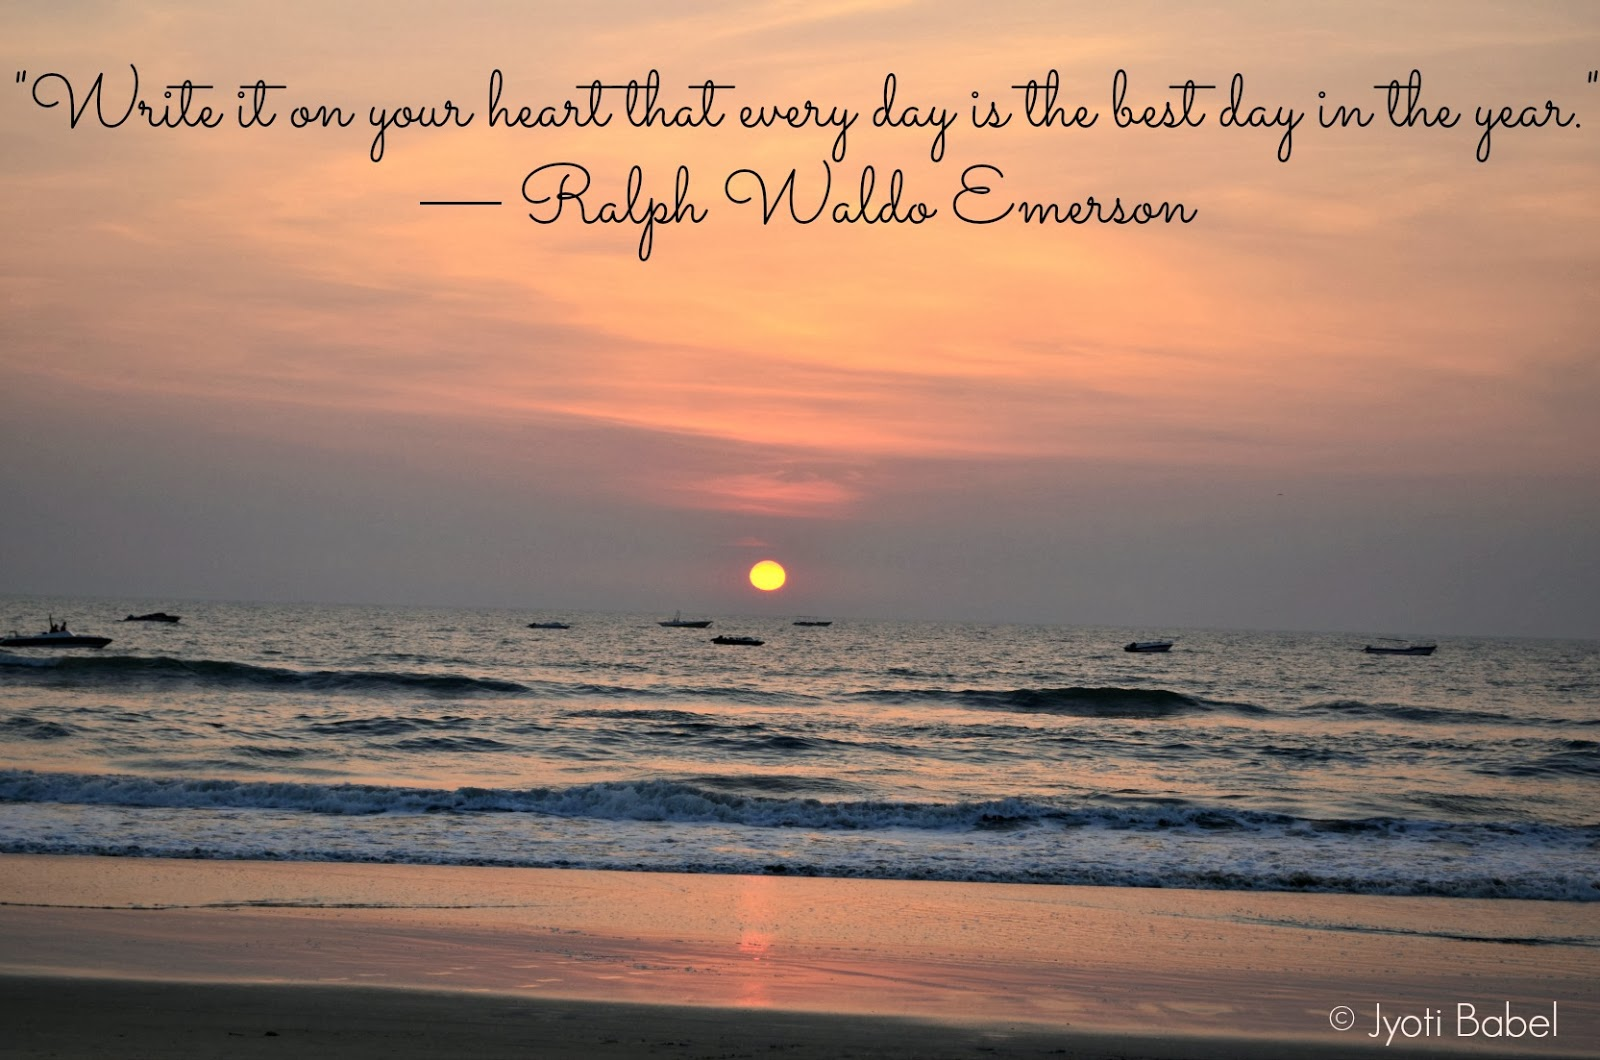 Write it on your heart that every day is the best day in the year. Ralph Waldo Emerson.